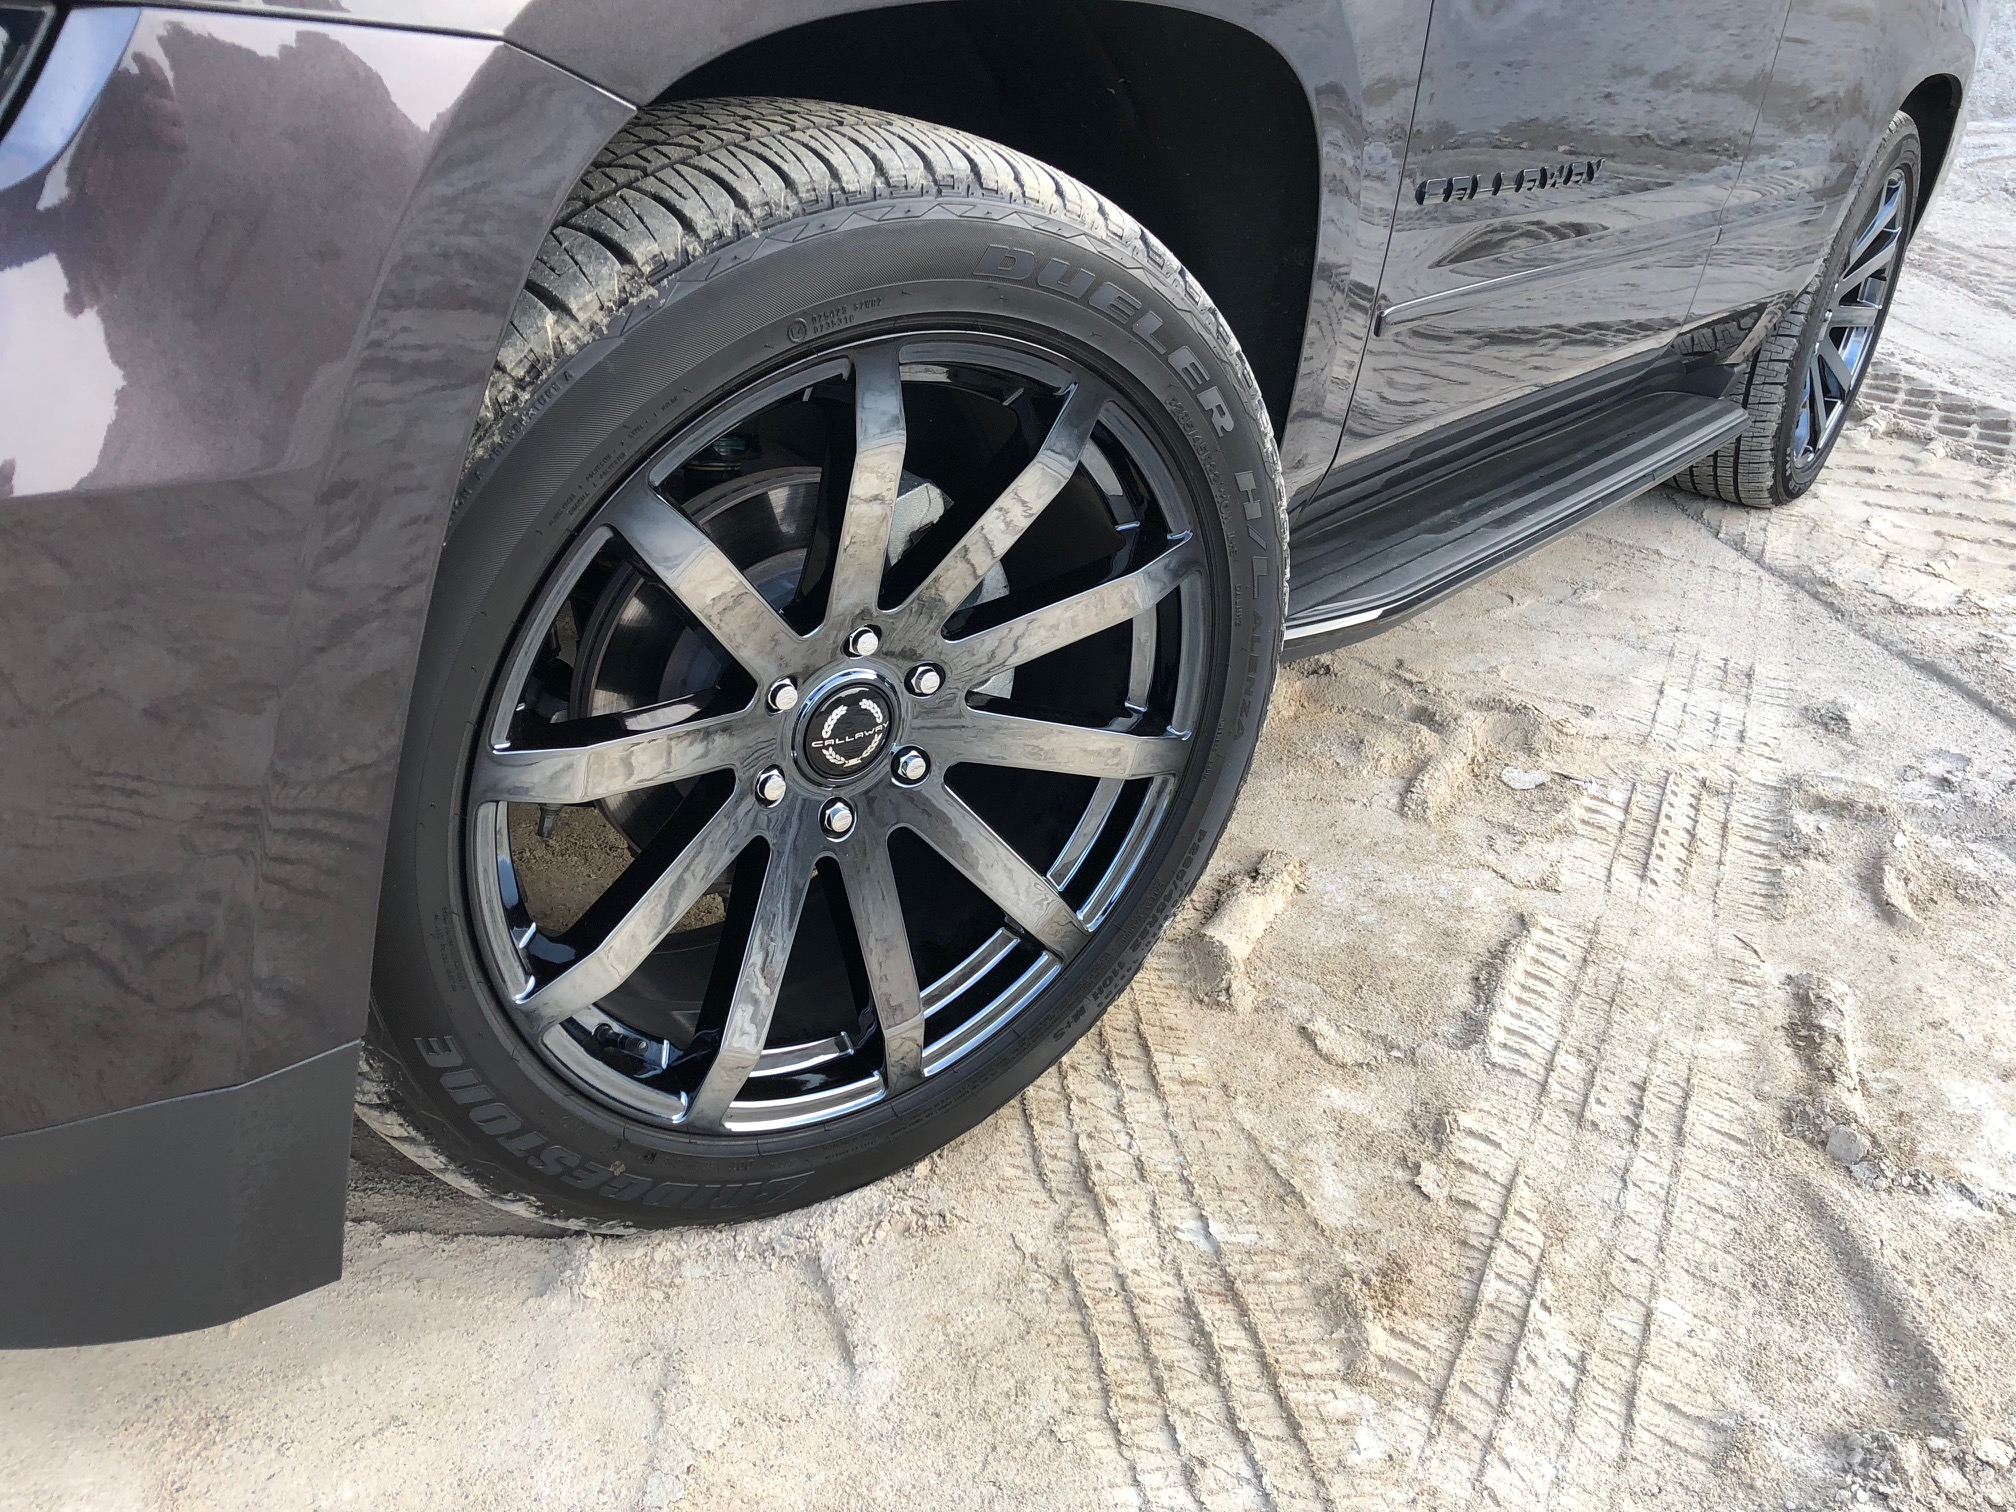 Callaway Ten Spoke Alloy Wheels